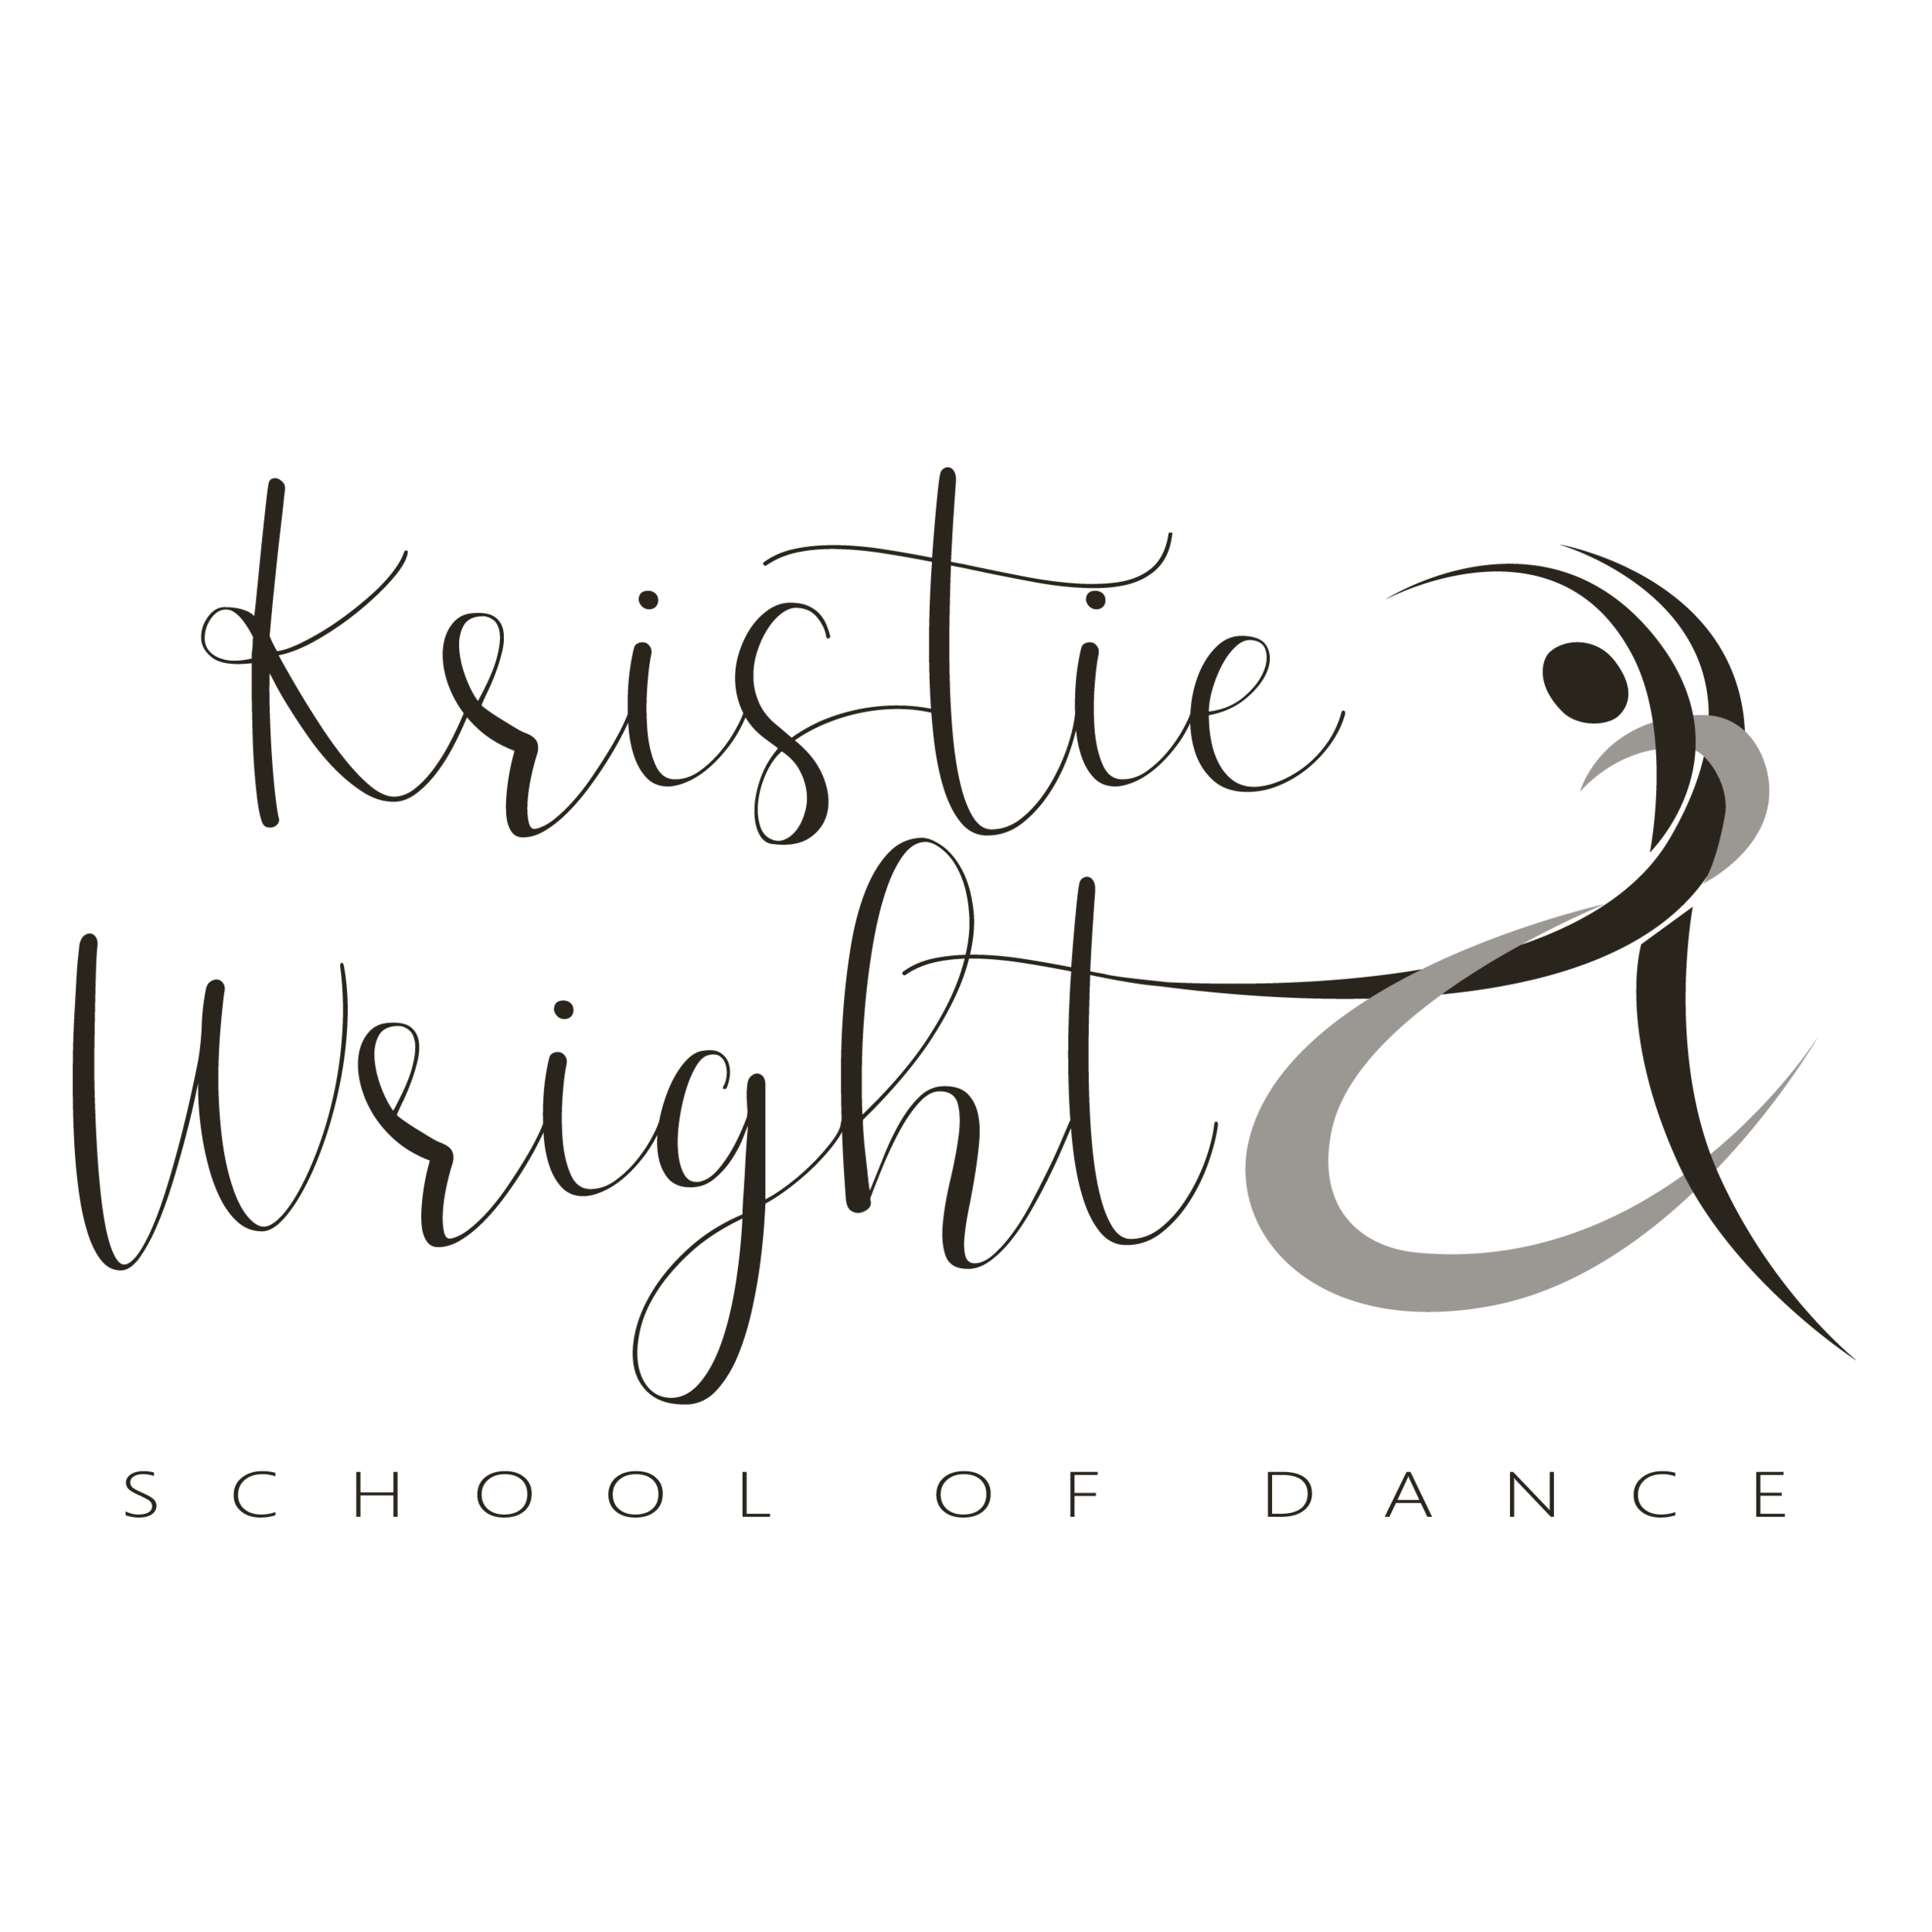 Kristie Wright School of Dance